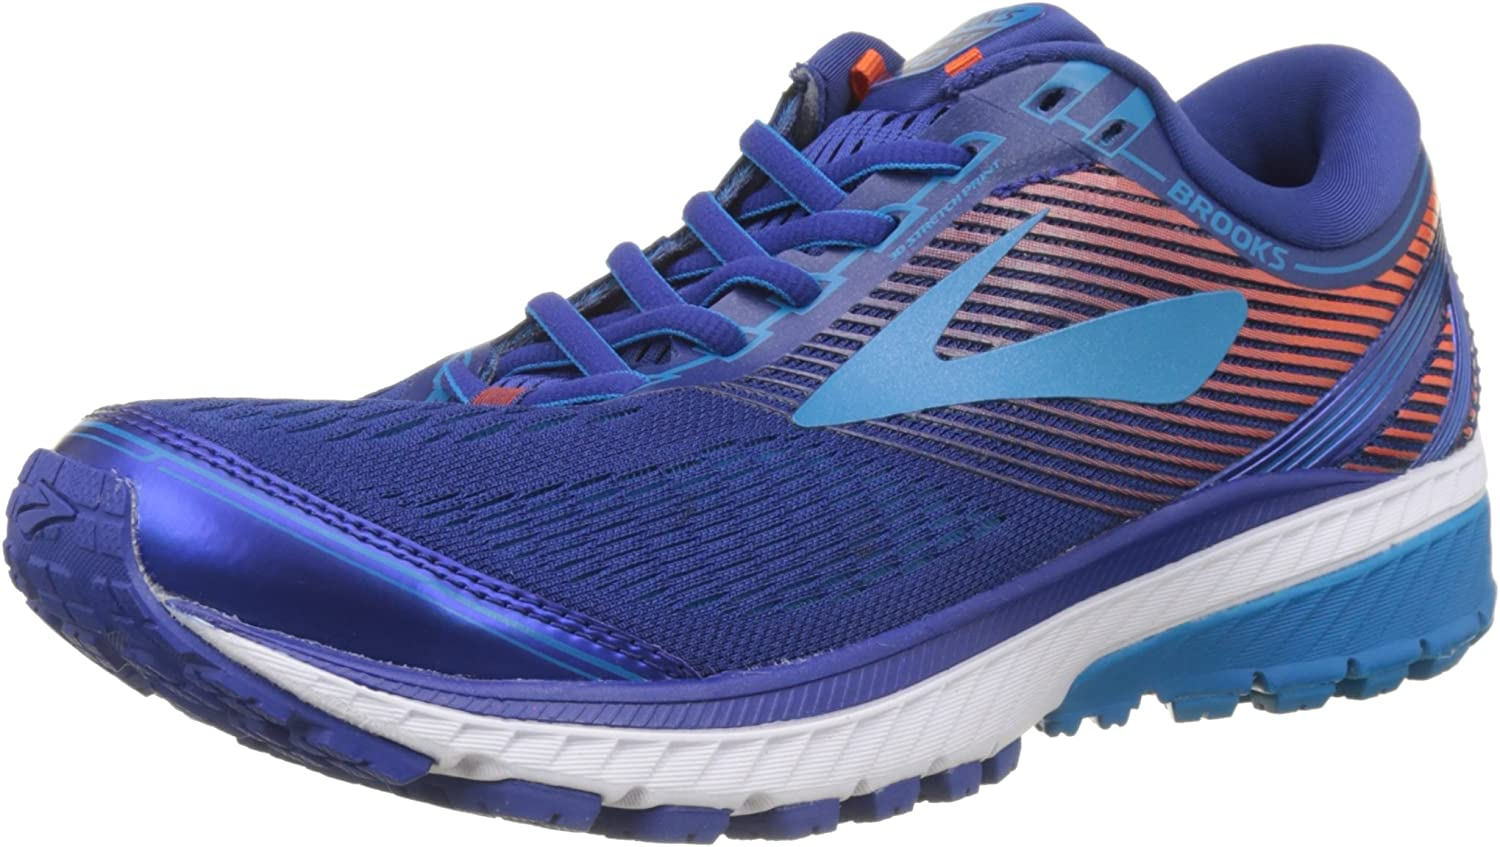 Brooks Ghost 10, Zapatillas de Running para Hombre, Azul (Mazarinebluemethylbluecherry 1d411), 40.5 EU: Amazon.es: Zapatos y complementos